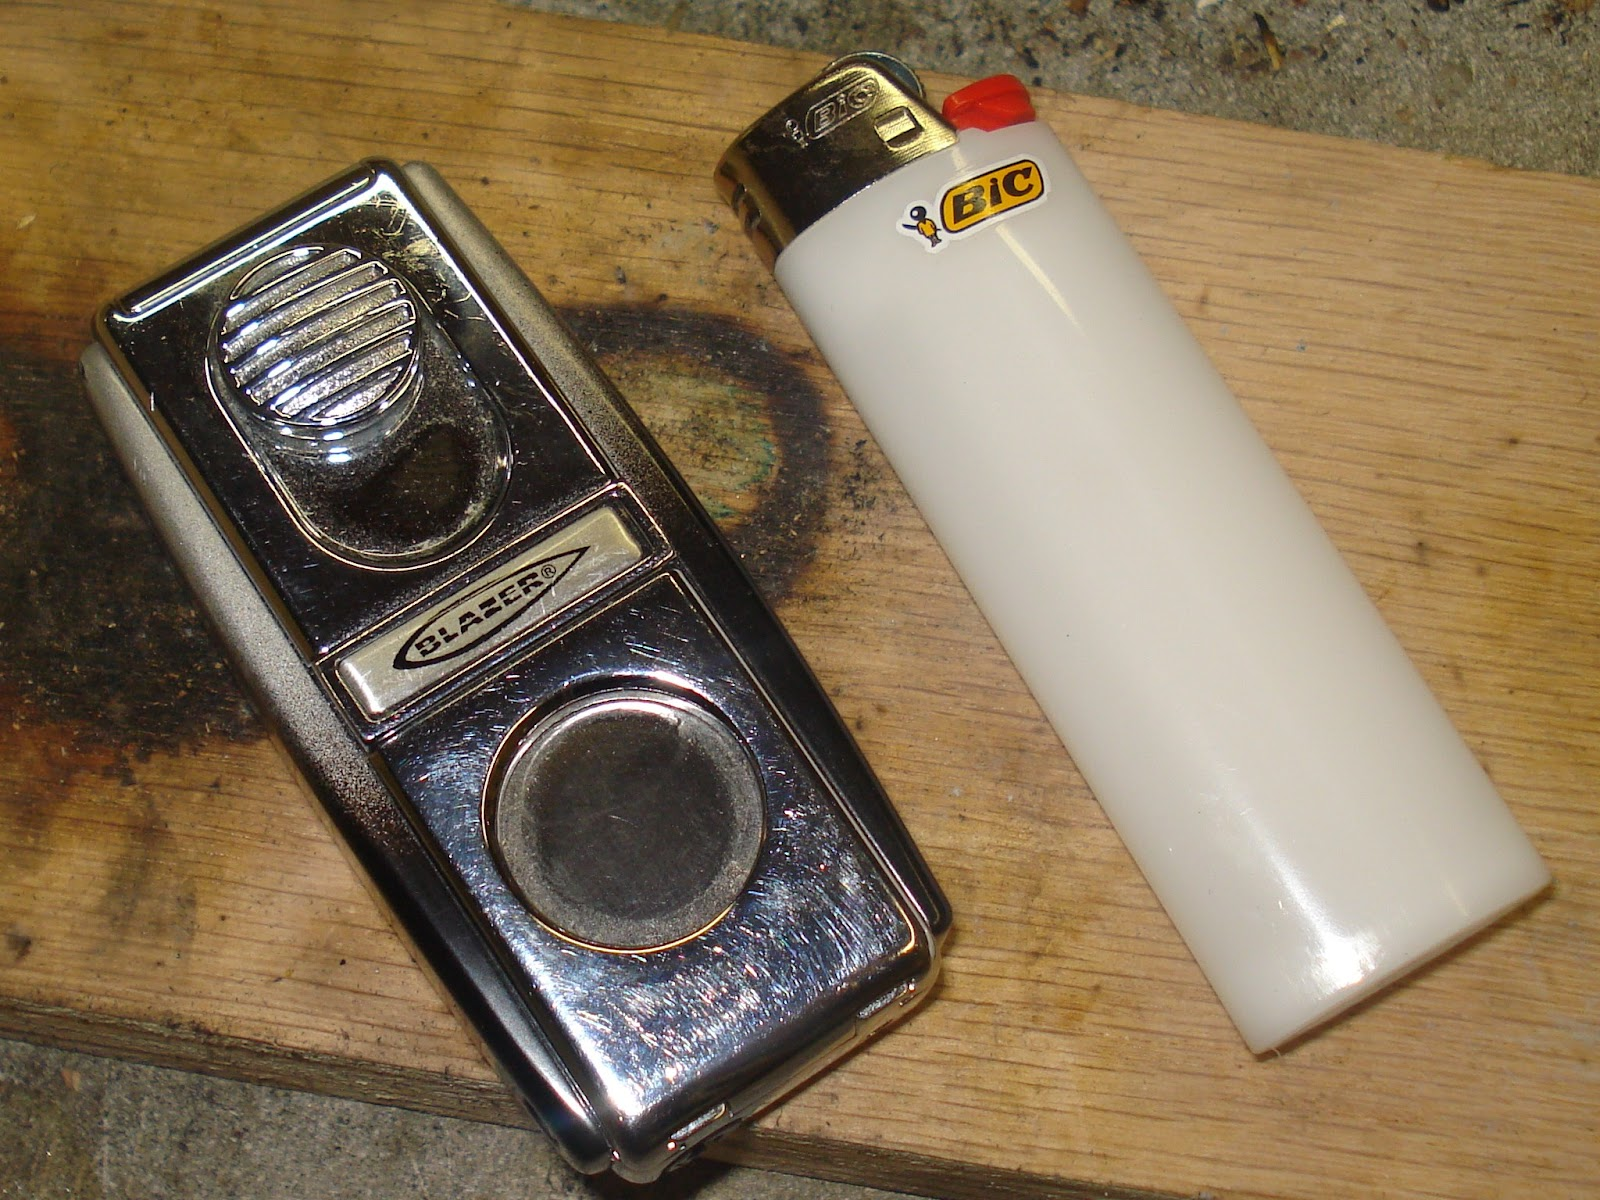 Pros and cons of gasoline lighters. How to fill the lighter with gasoline 7